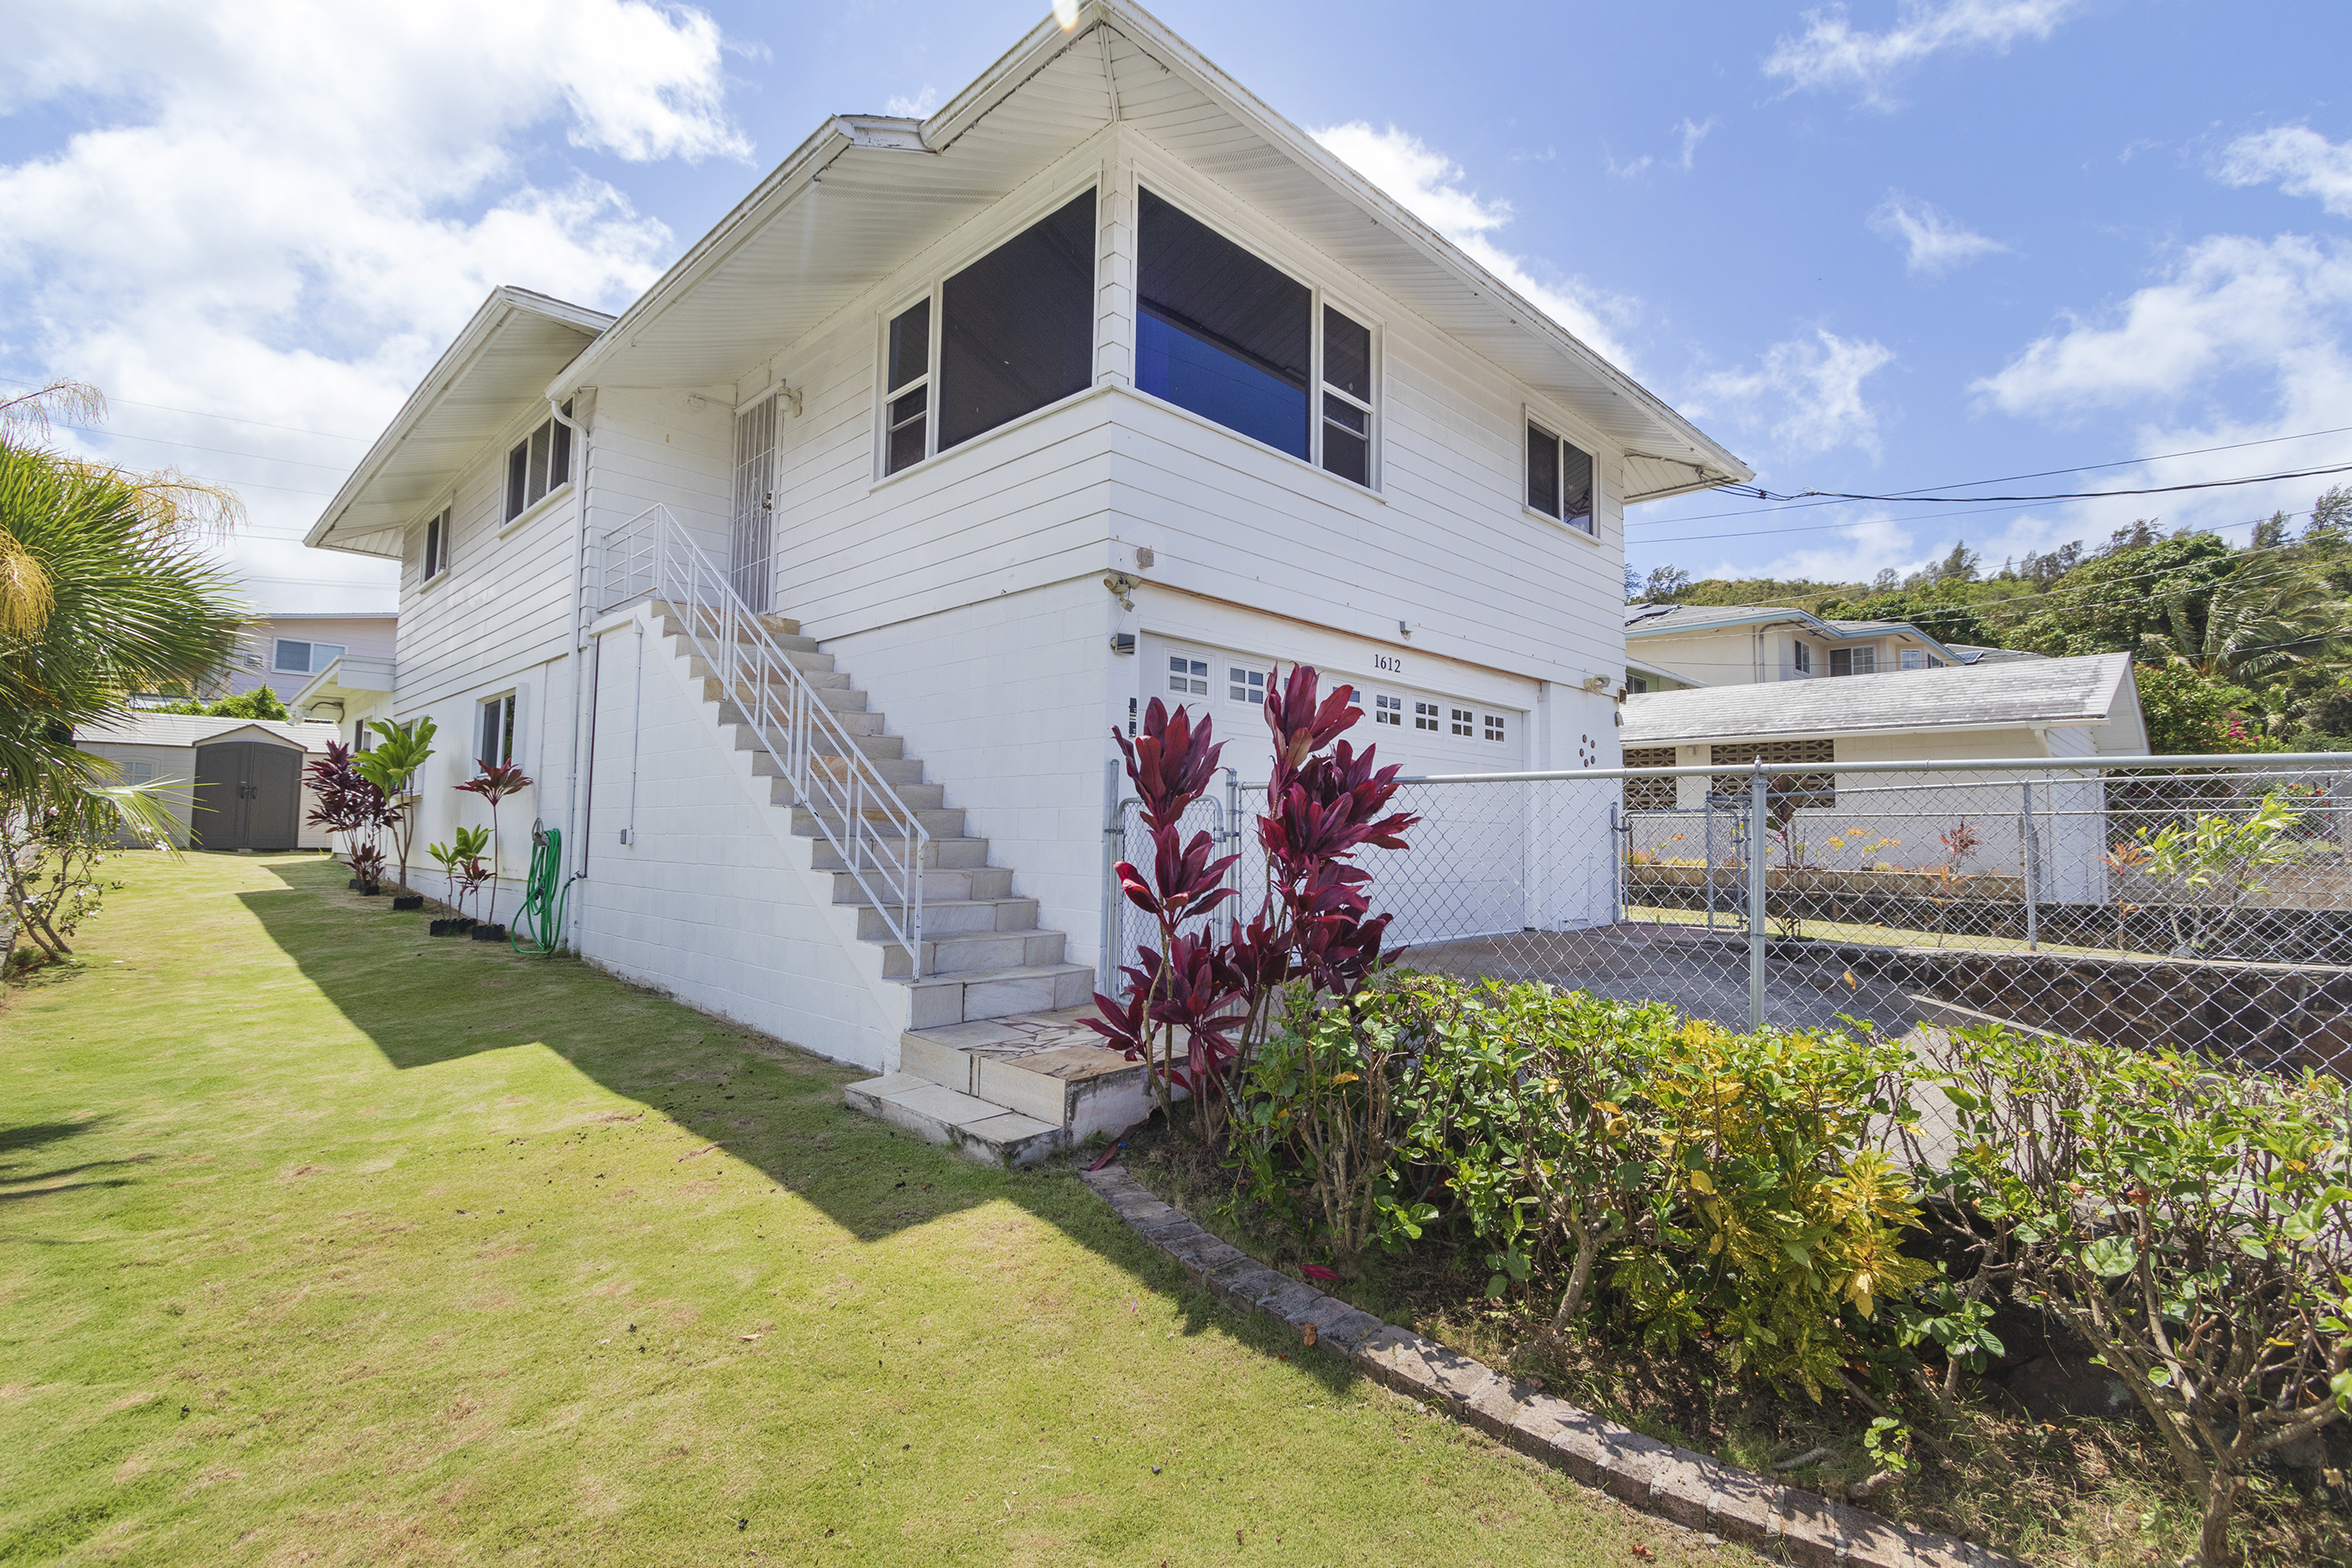 Side view of 1612 Perry Street Honolulu 96819